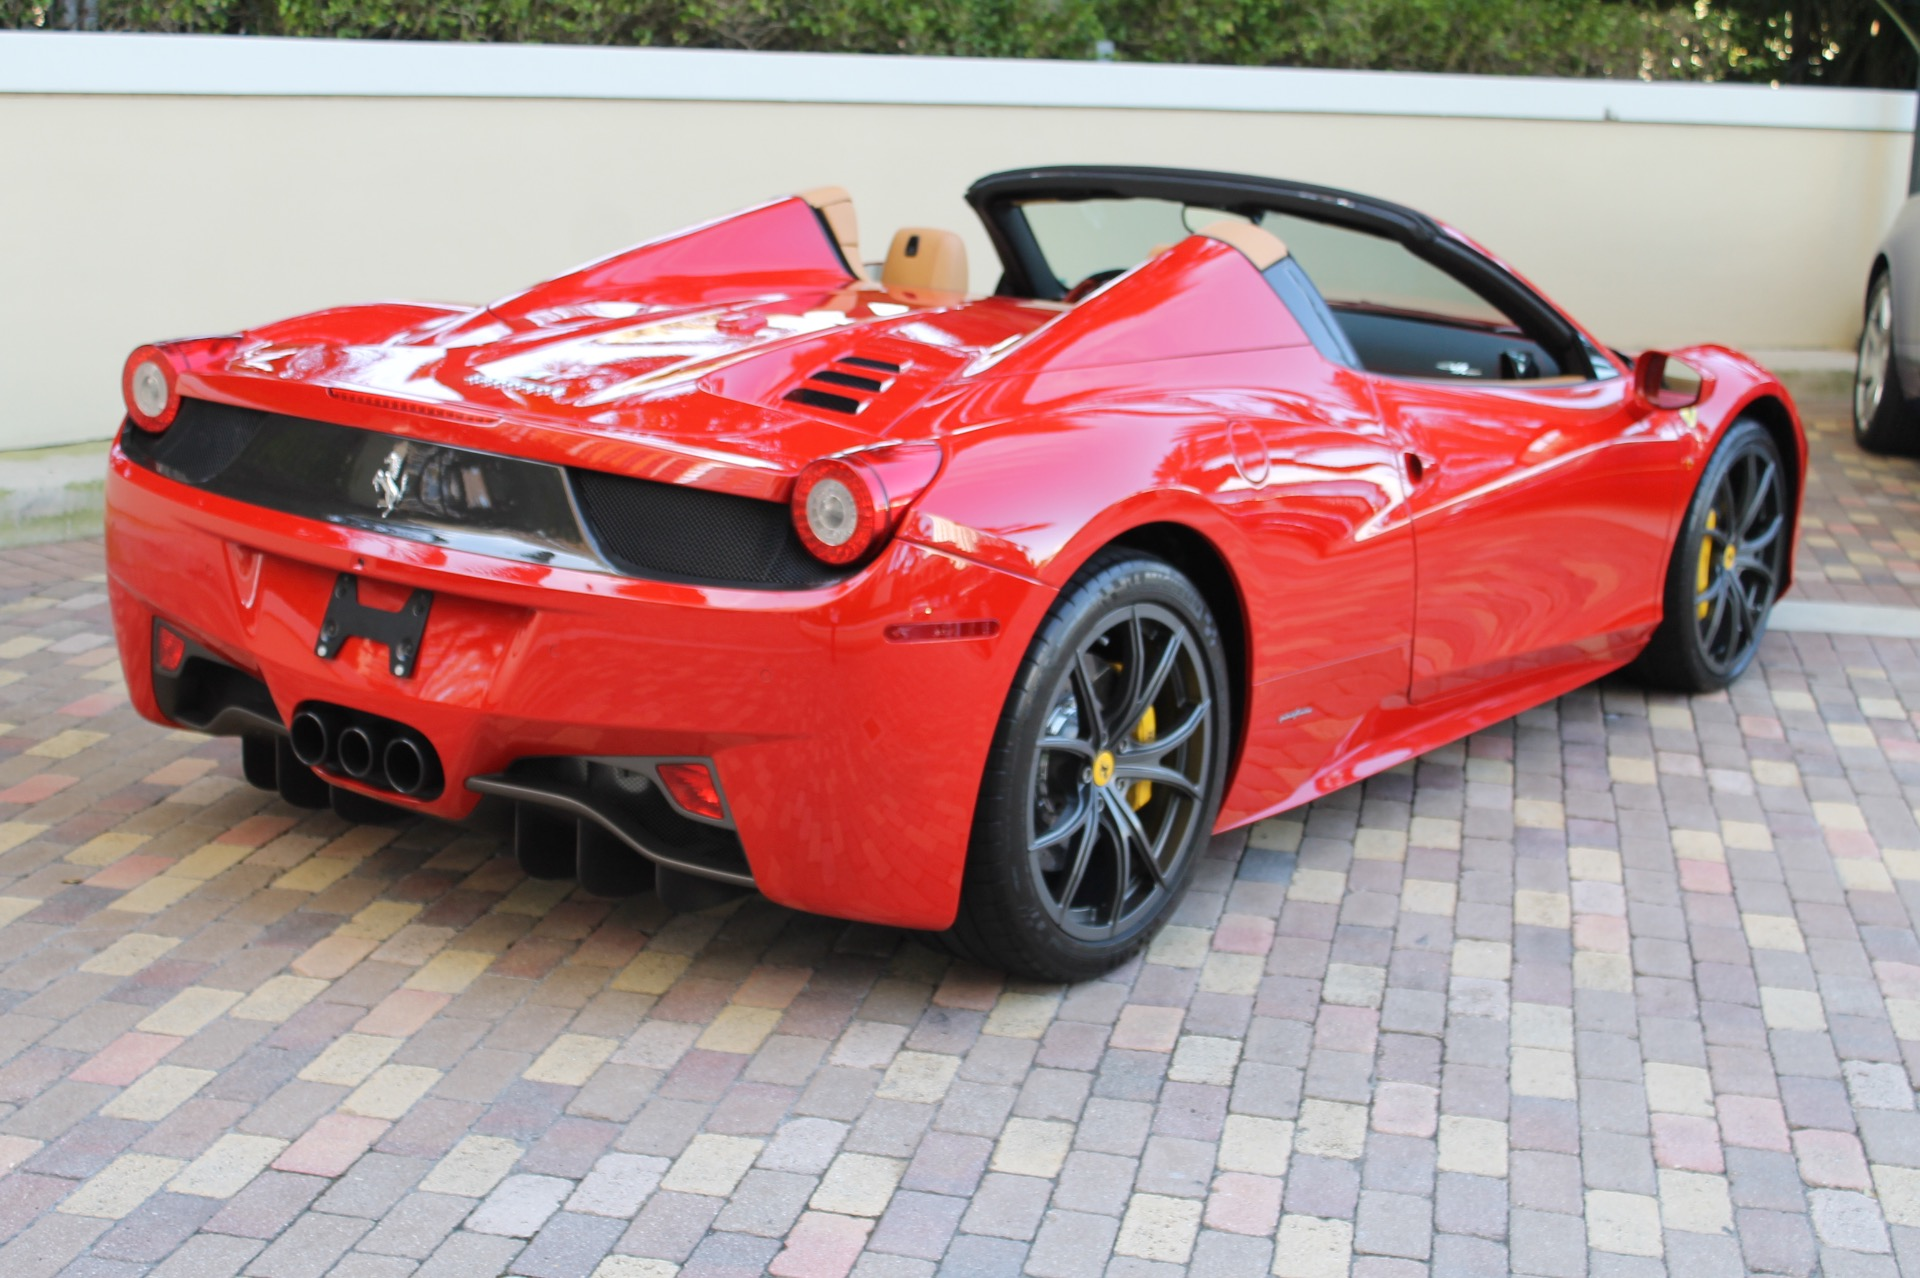 Used Ferrari 458 >> 2014 Ferrari 458 Spider 4,316 Miles Red Convertible - Used Ferrari 458 for sale in Brooklyn, New ...